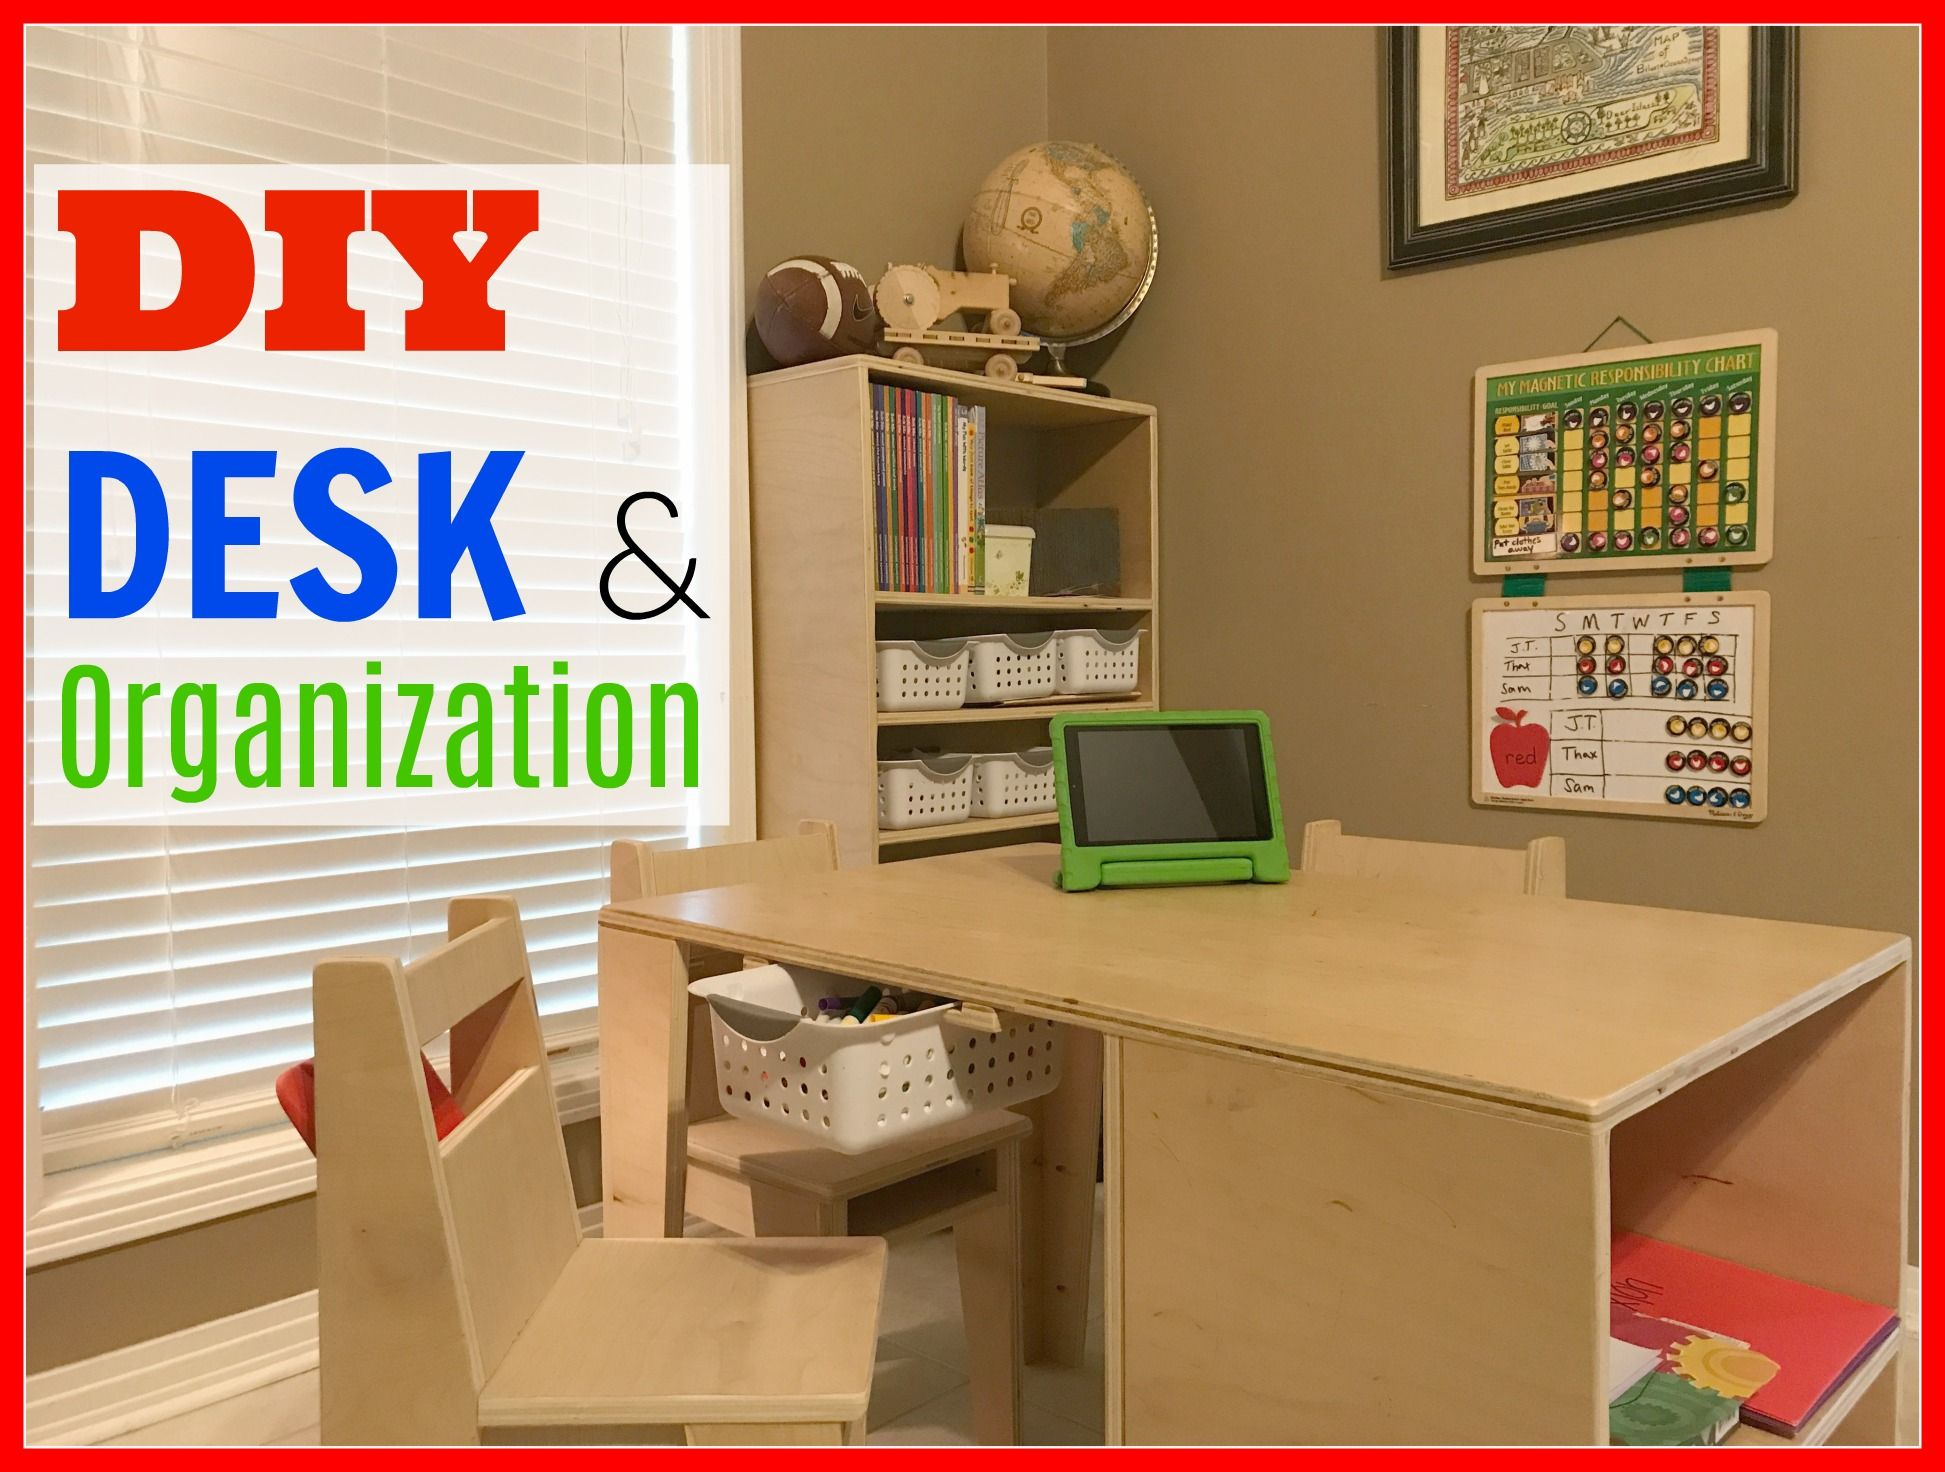 DIY Storage and Organization in a Kids Learning Center. Use plywood for the entire project. PLANS AVAILABLE  sc 1 st  Pinterest & DIY Desk and Organization | Organizations Project ideas and Woodworking